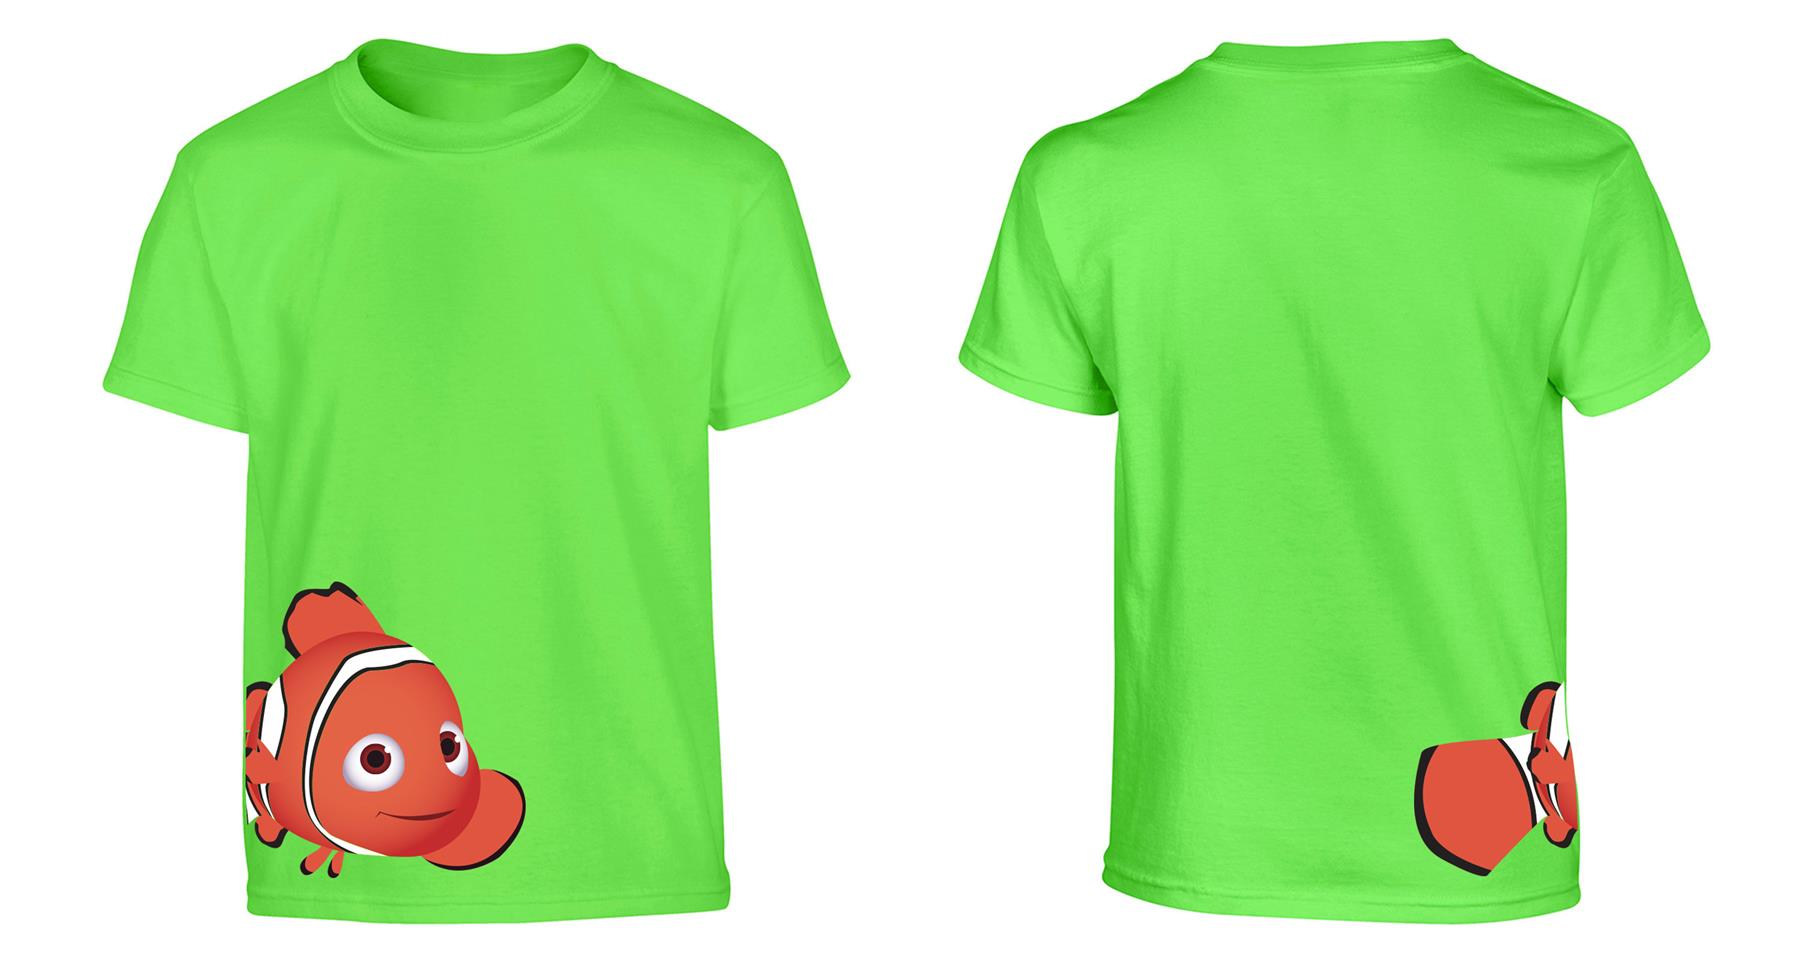 OS547K Finding Dory Kids T-shirt